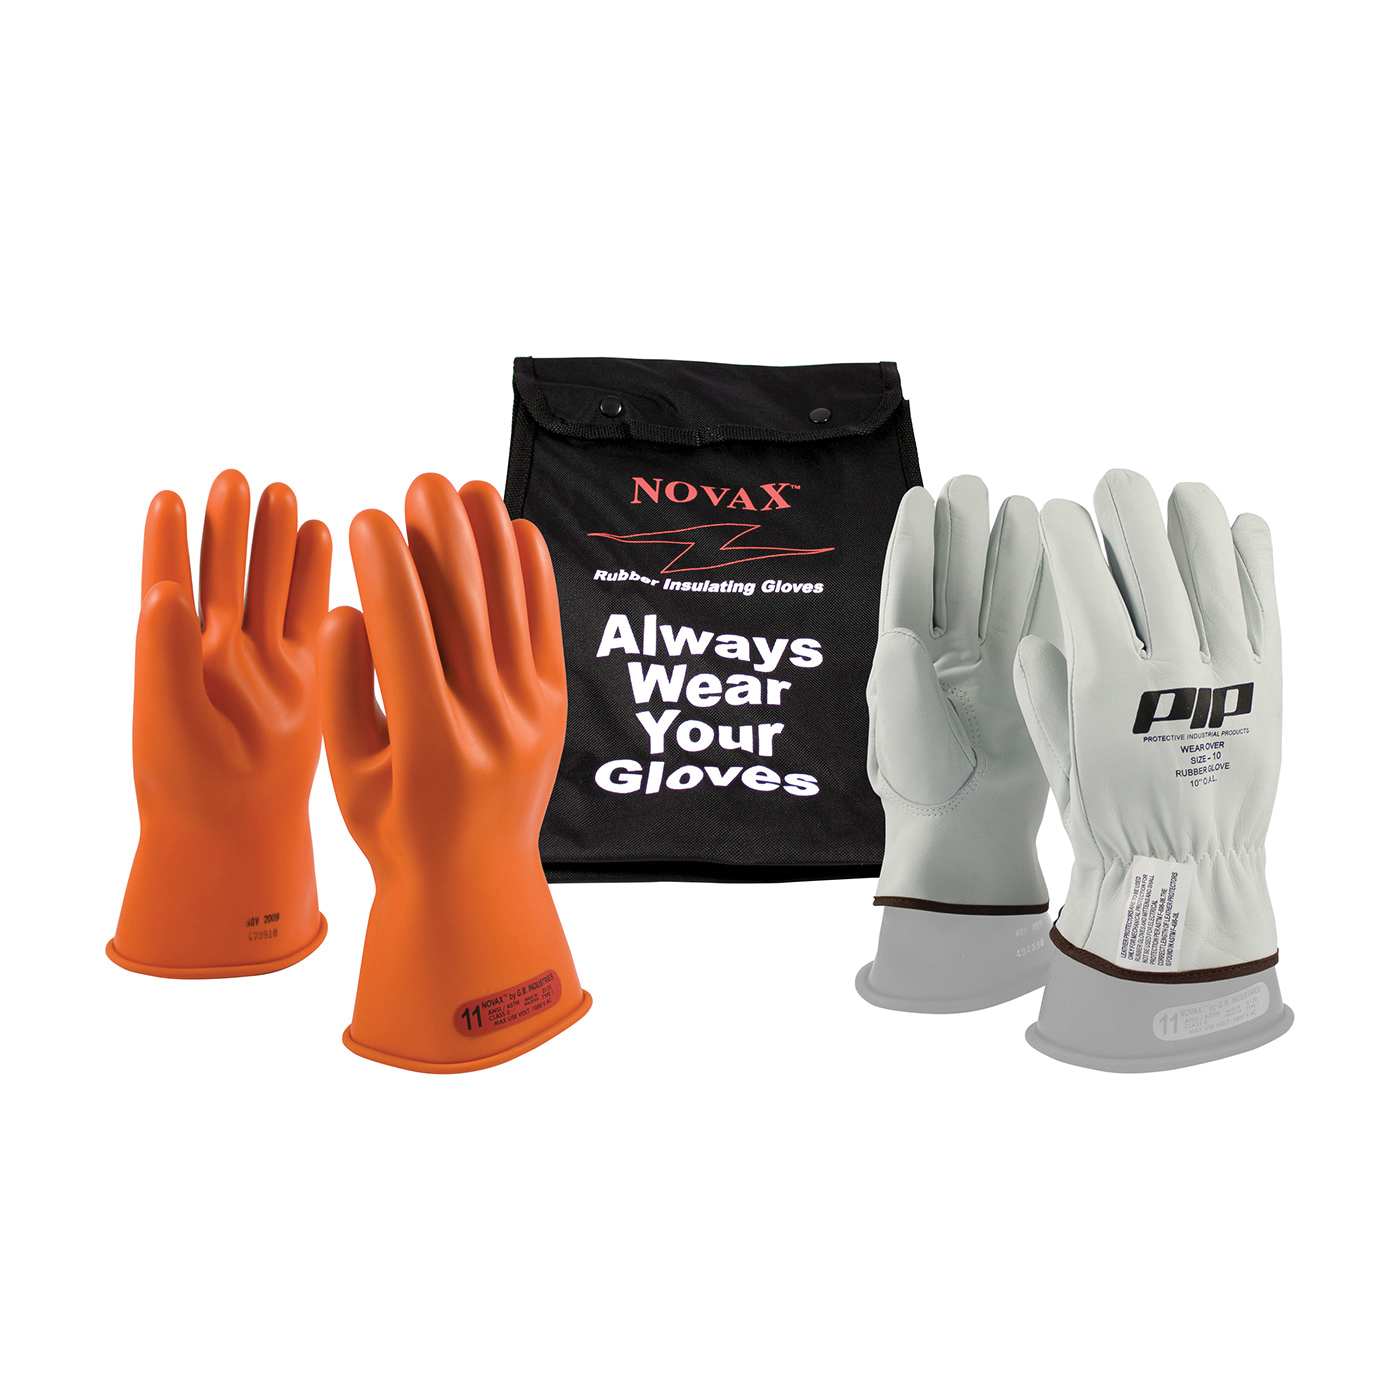 Novax® 147-SK-0/9-KIT Insulating Unisex Electrical Safety Gloves Kit, SZ 9, Goatskin Leather/Natural Rubber, Natural/Orange, 11 in L, ASTM Class: Class 0, 1000 VAC, 1500 VDC Max Use Voltage